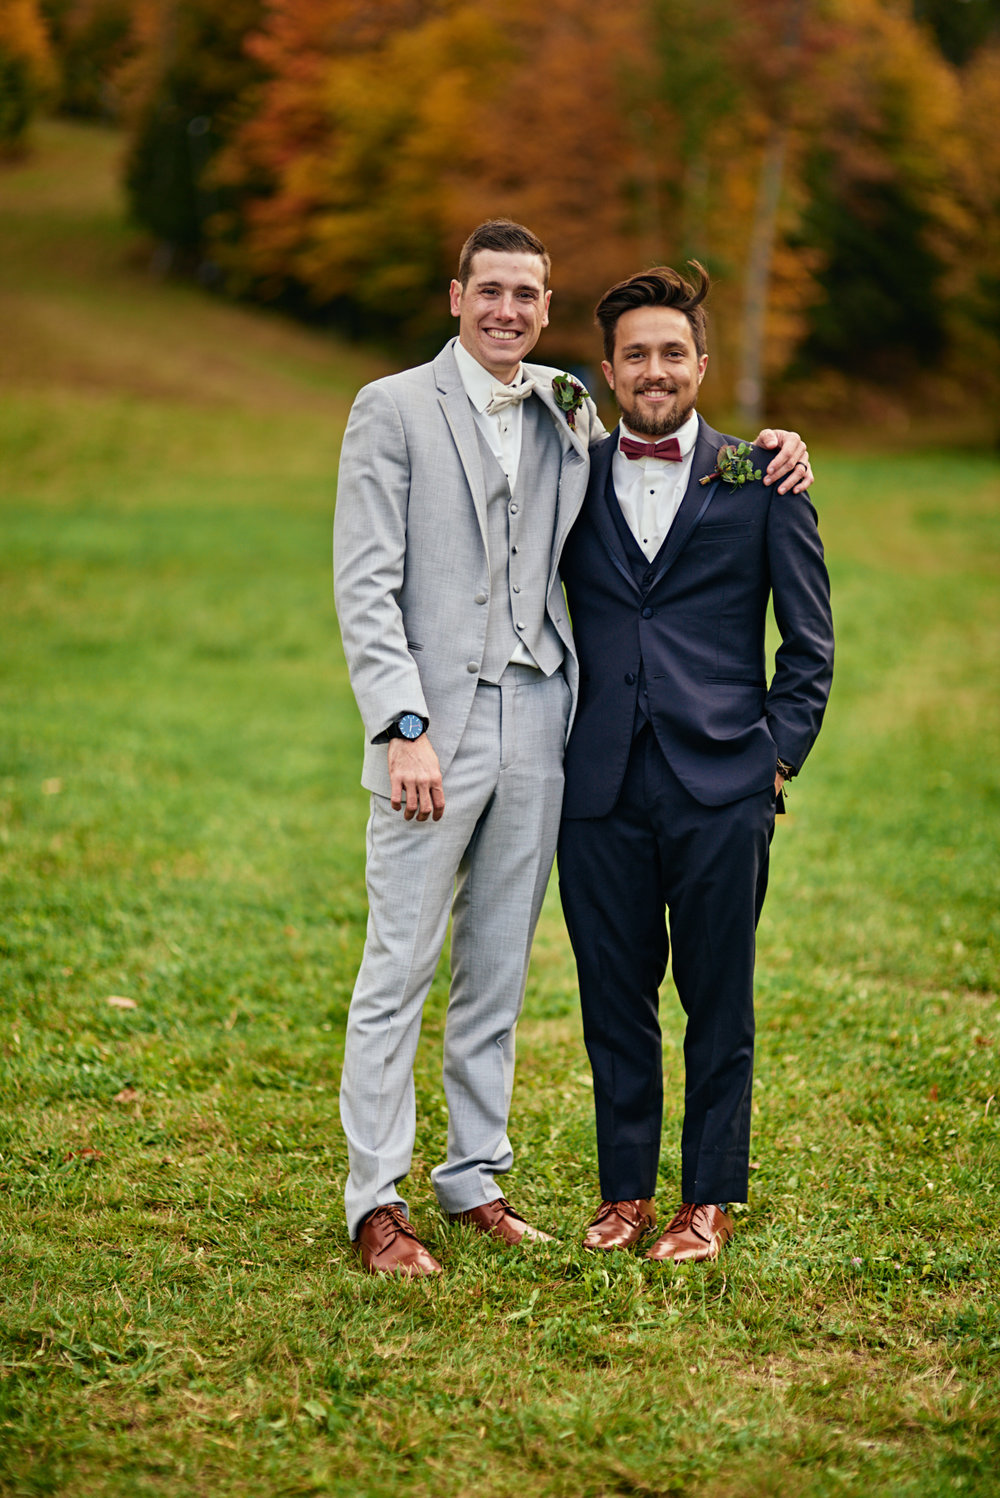 Wedding Photography by Cate Bligh | Fall foliage photos of the bridal party at Mount Sunapee in Newbury, NH